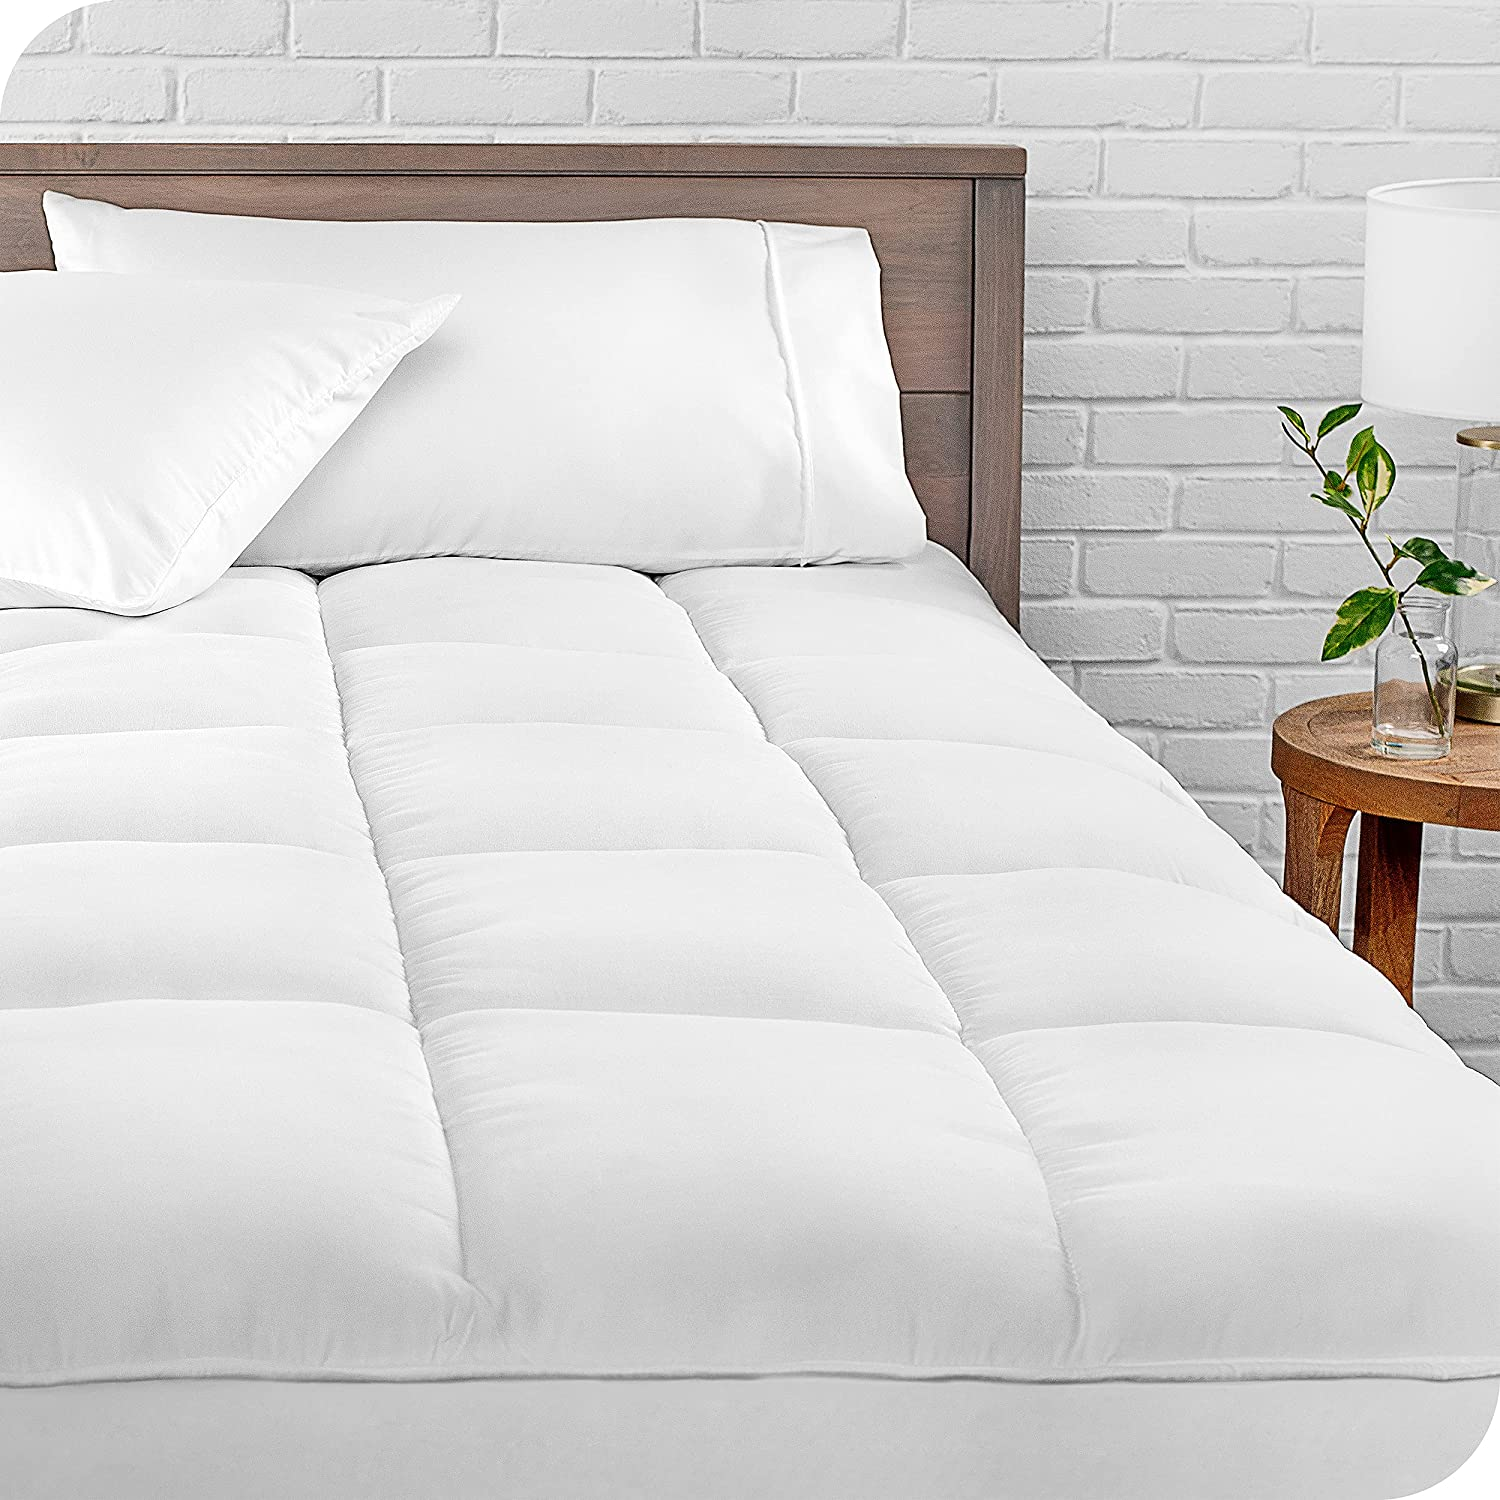 Challenge the lowest price of Japan Japan Maker New Bare Home Pillow-Top Full Mattress Pad - Premium Down Goose Alte